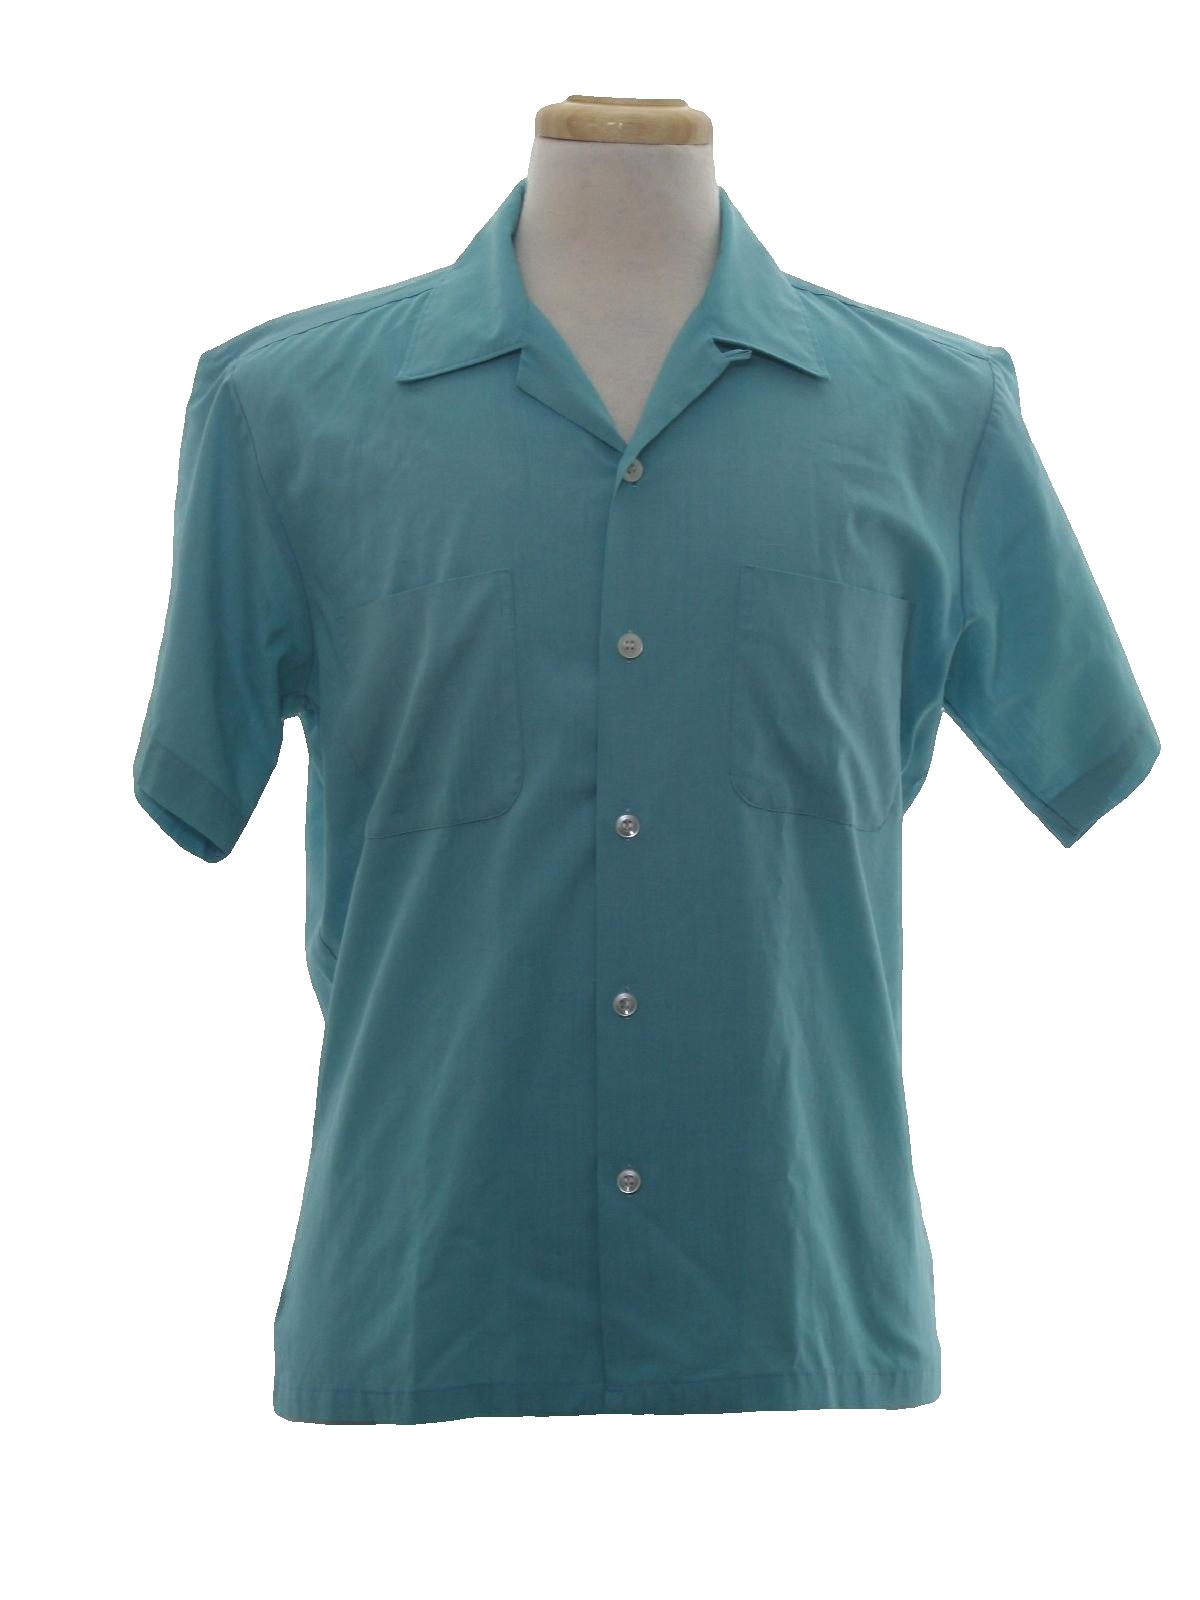 Retro 60s shirt sears 60s sears mens turquoise for Button up collared sport shirts